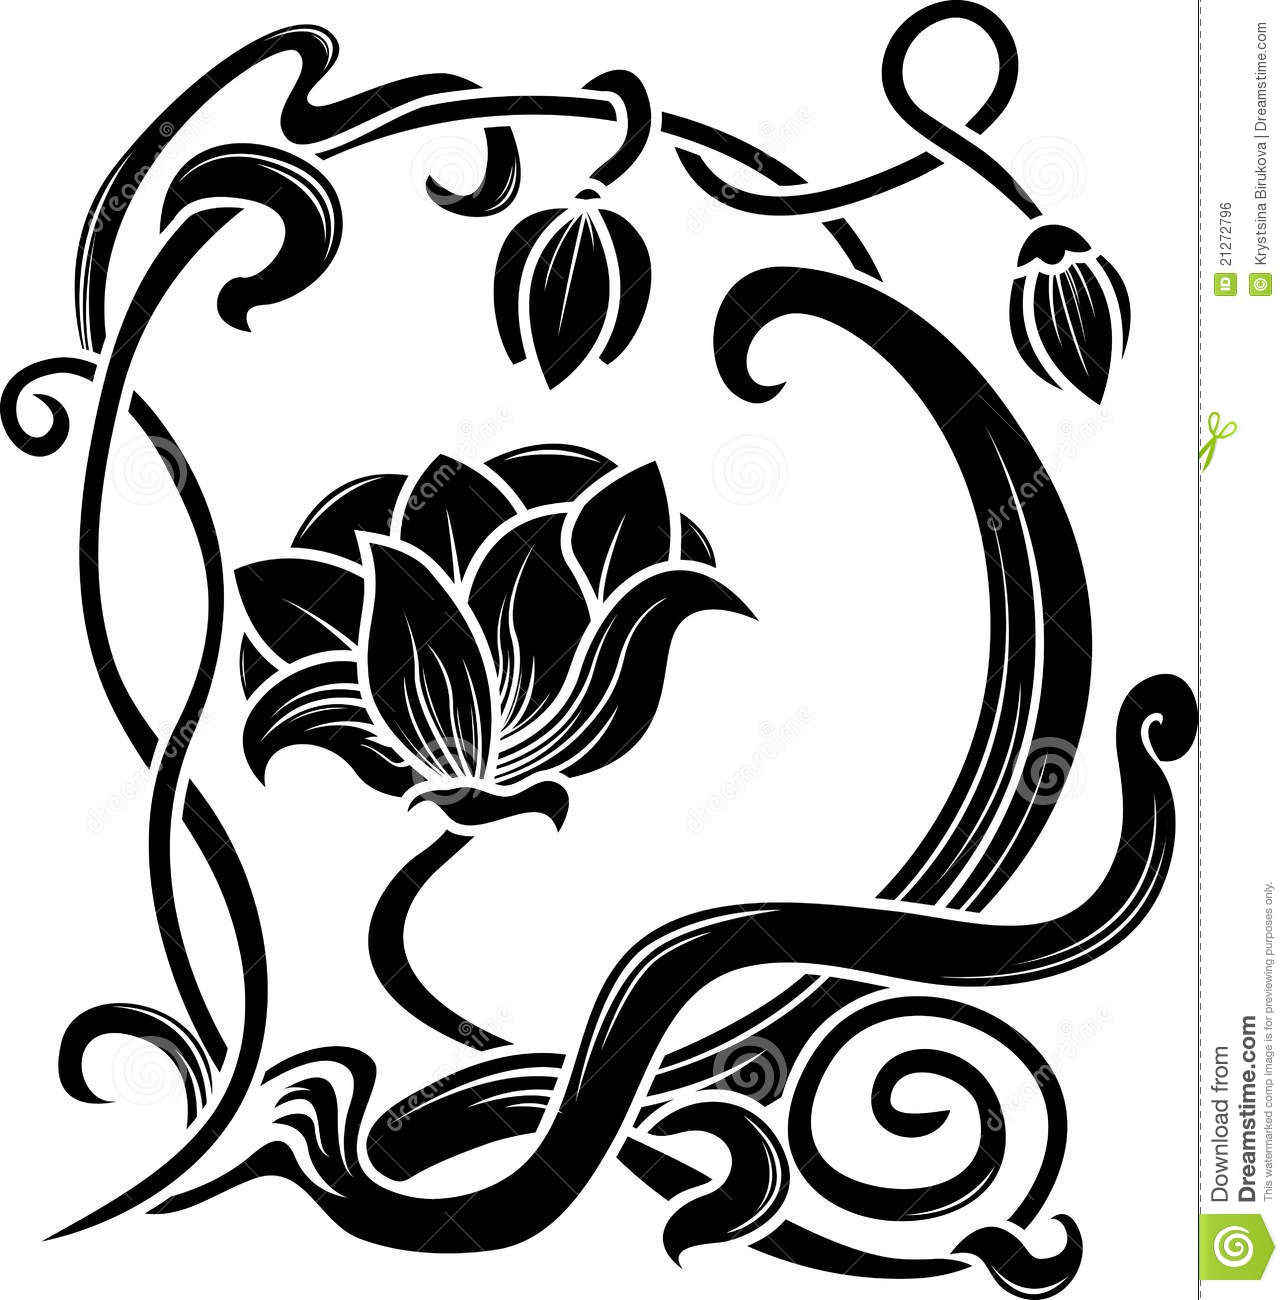 Flower stencil stock vector. Illustration of creative